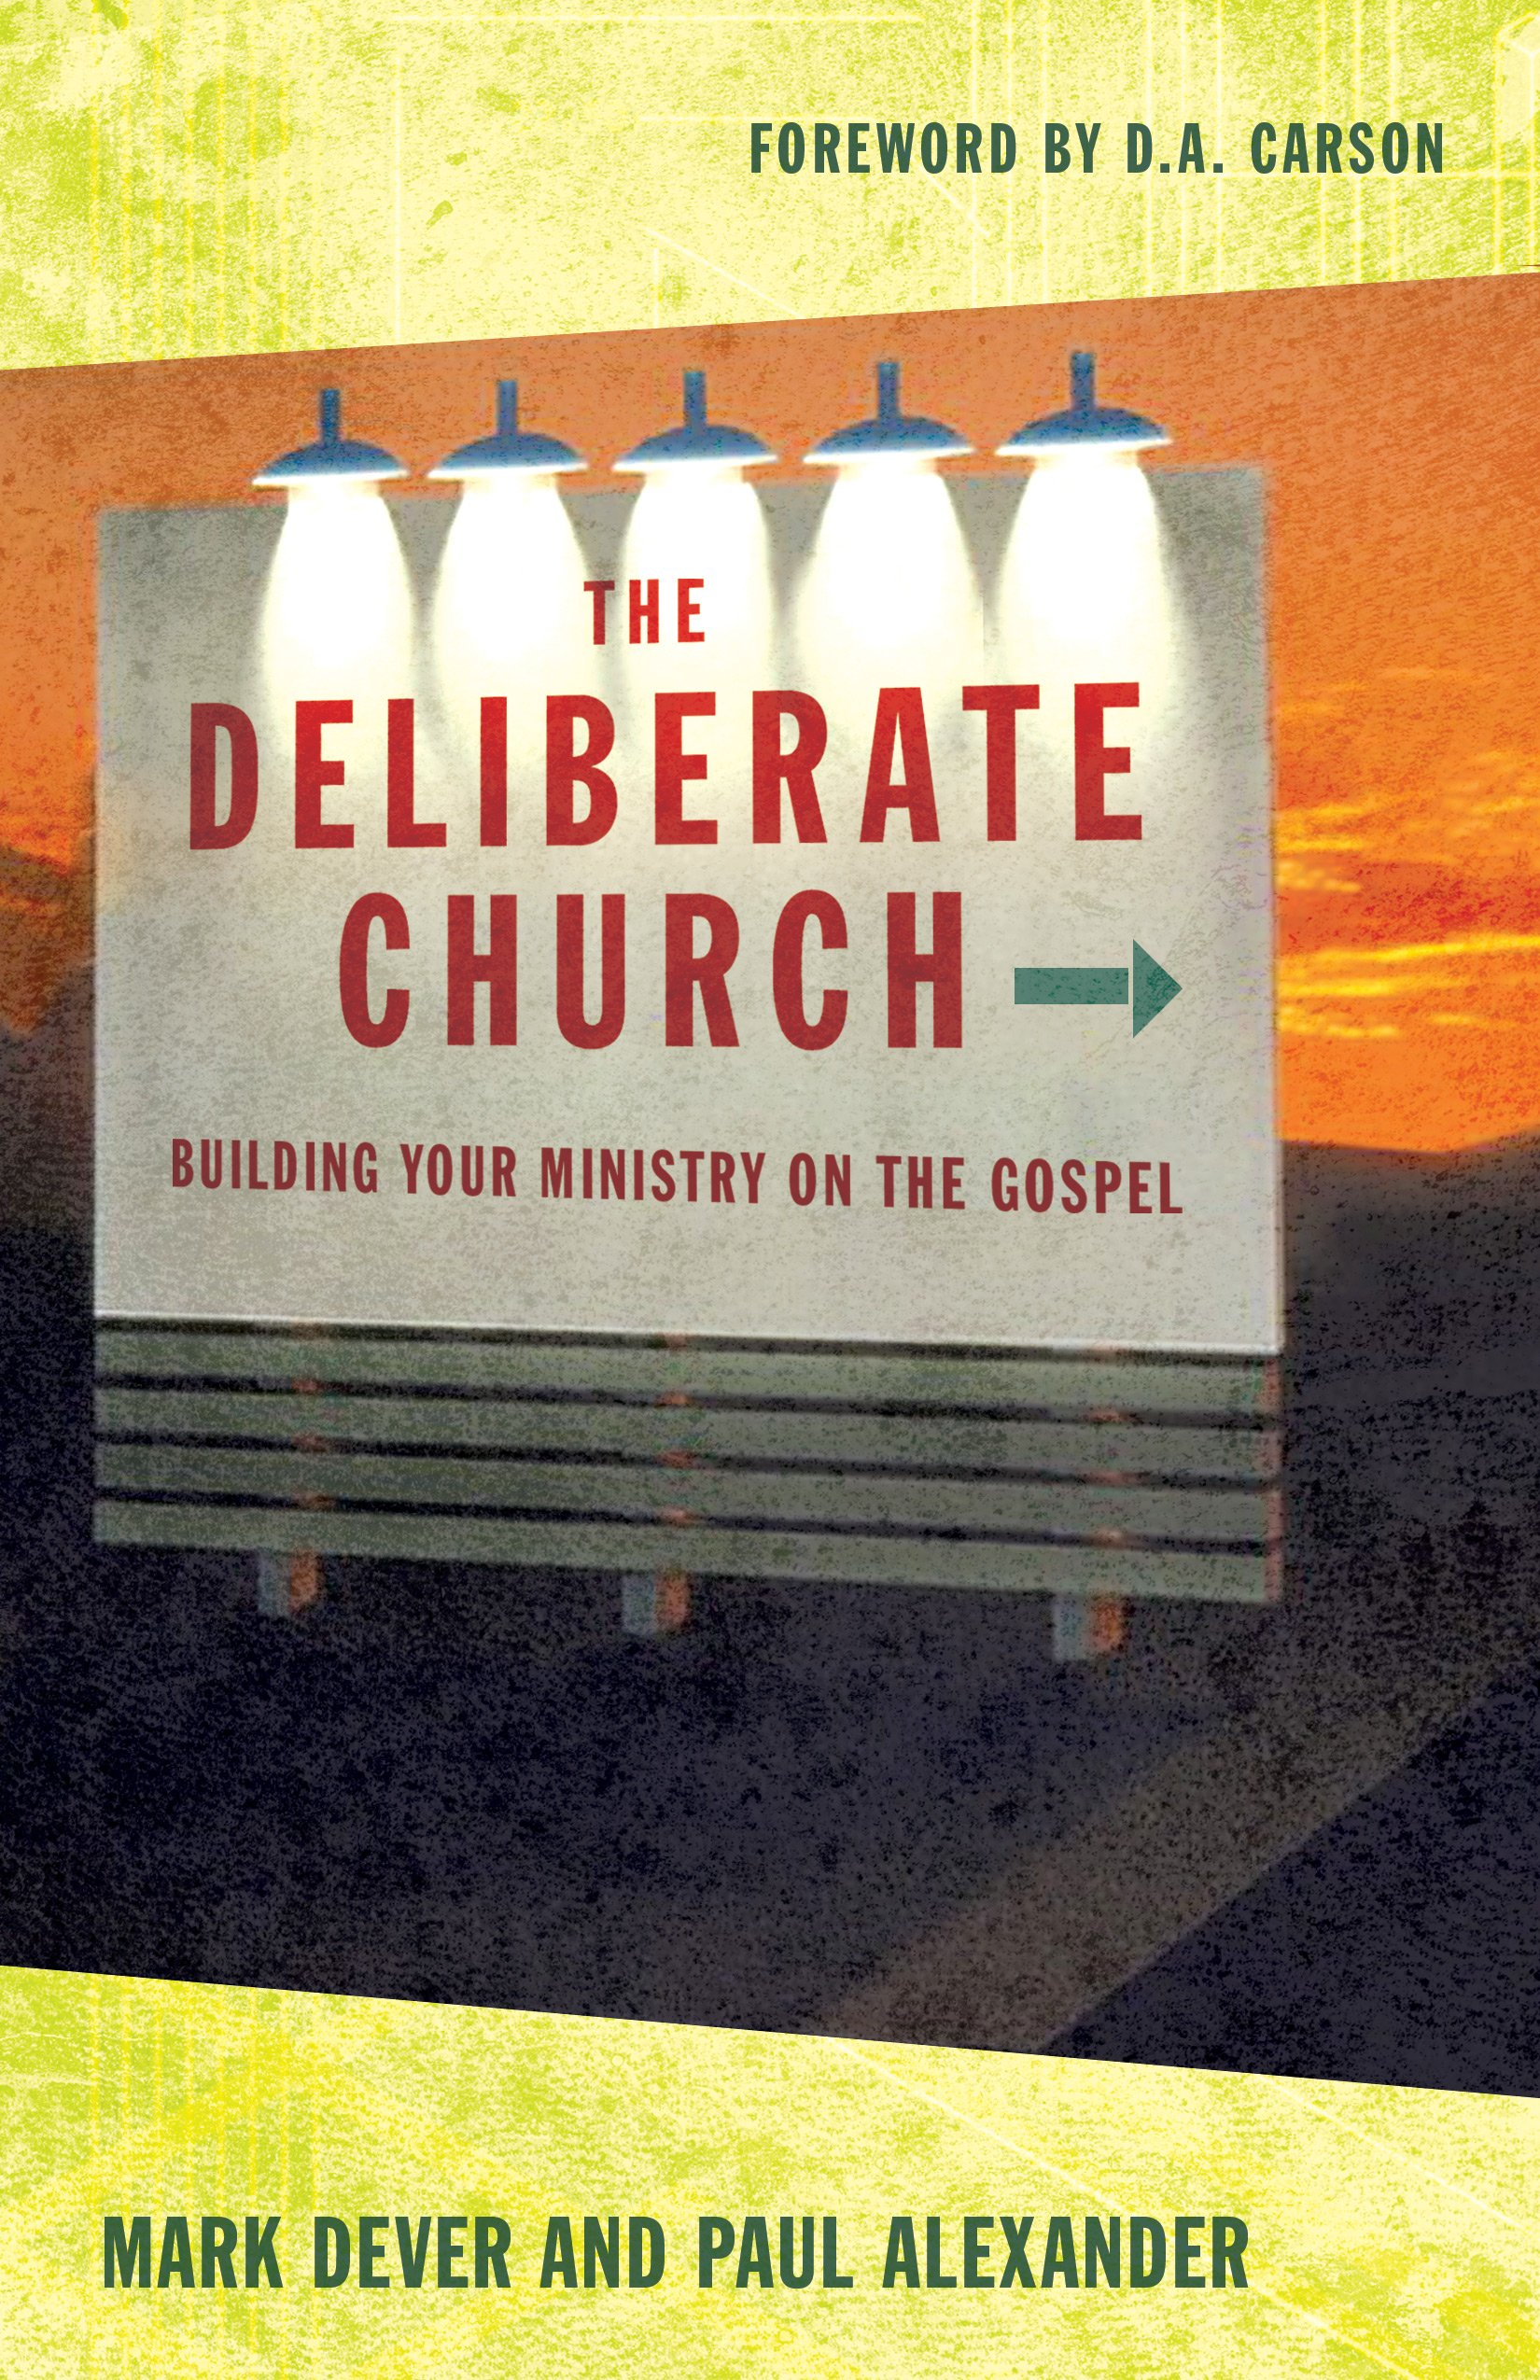 The Deliberate Church: Building Your Ministry on the Gospel PDF